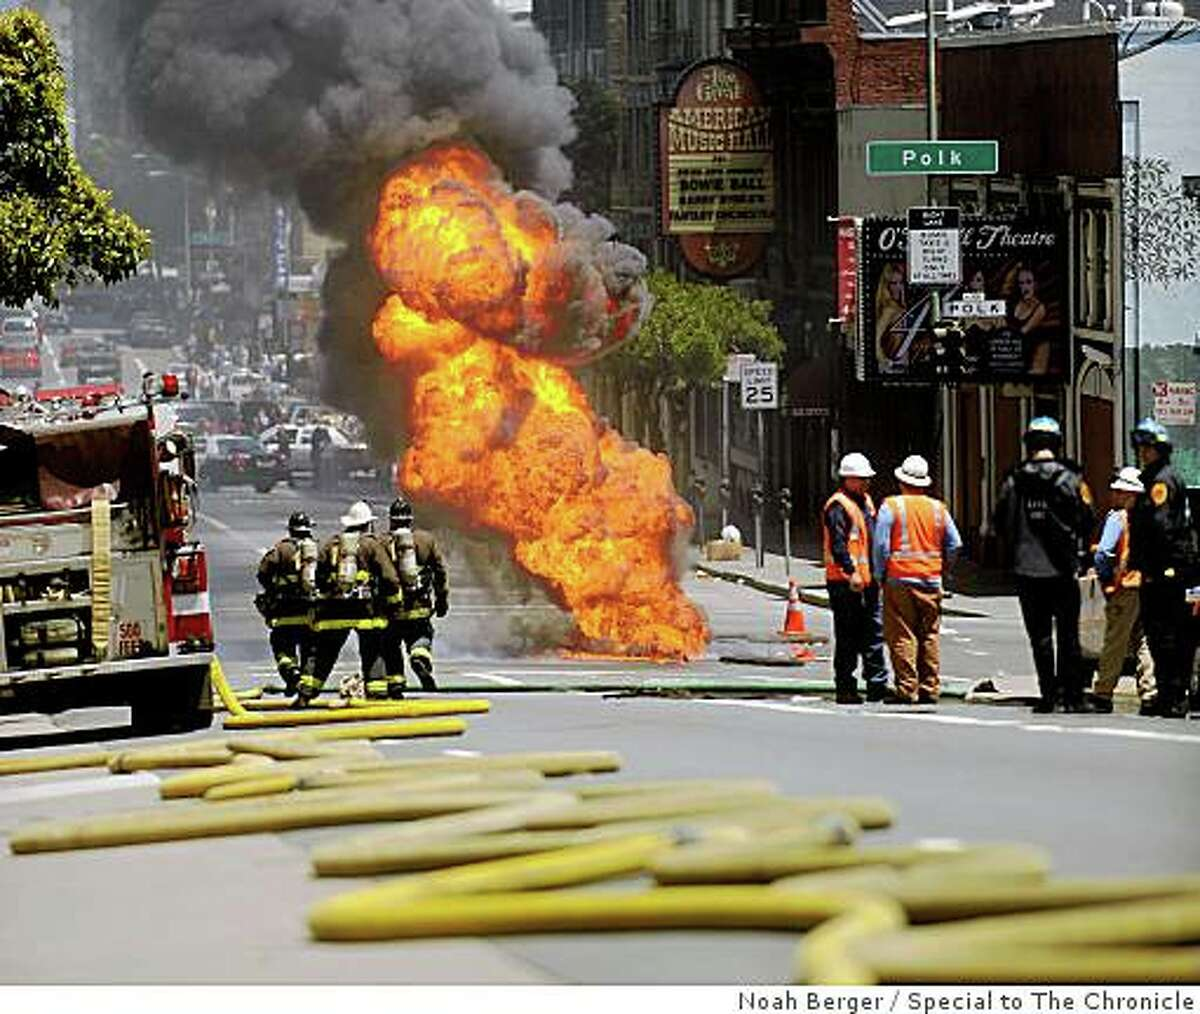 Fire pours through a manhole at Polk and O'Farrell Streets on Friday, June 5, 2009, in San Francisco.